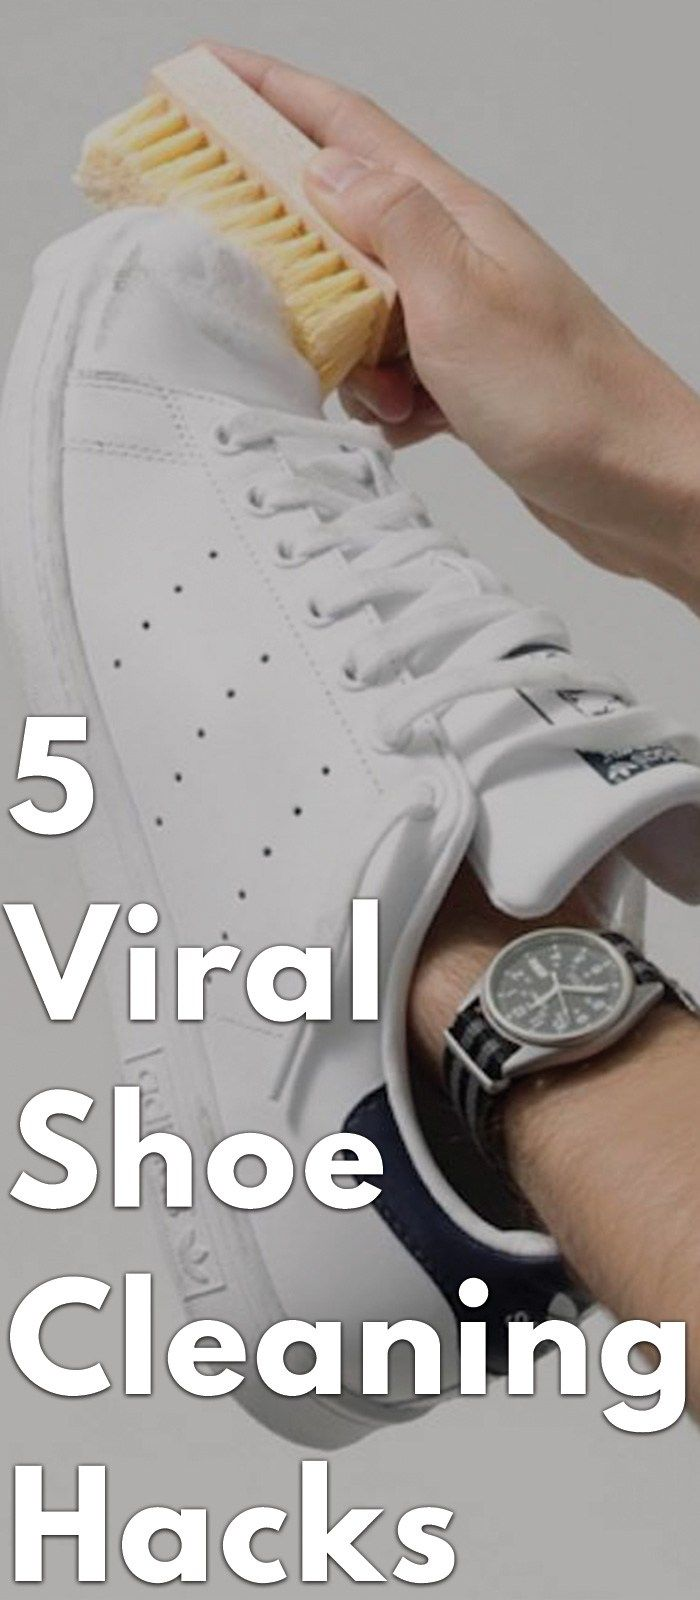 Lampe Originale A Faire Soi Meme Shoe Cleaning Hacks For All Type Of Footwears In Your Closet